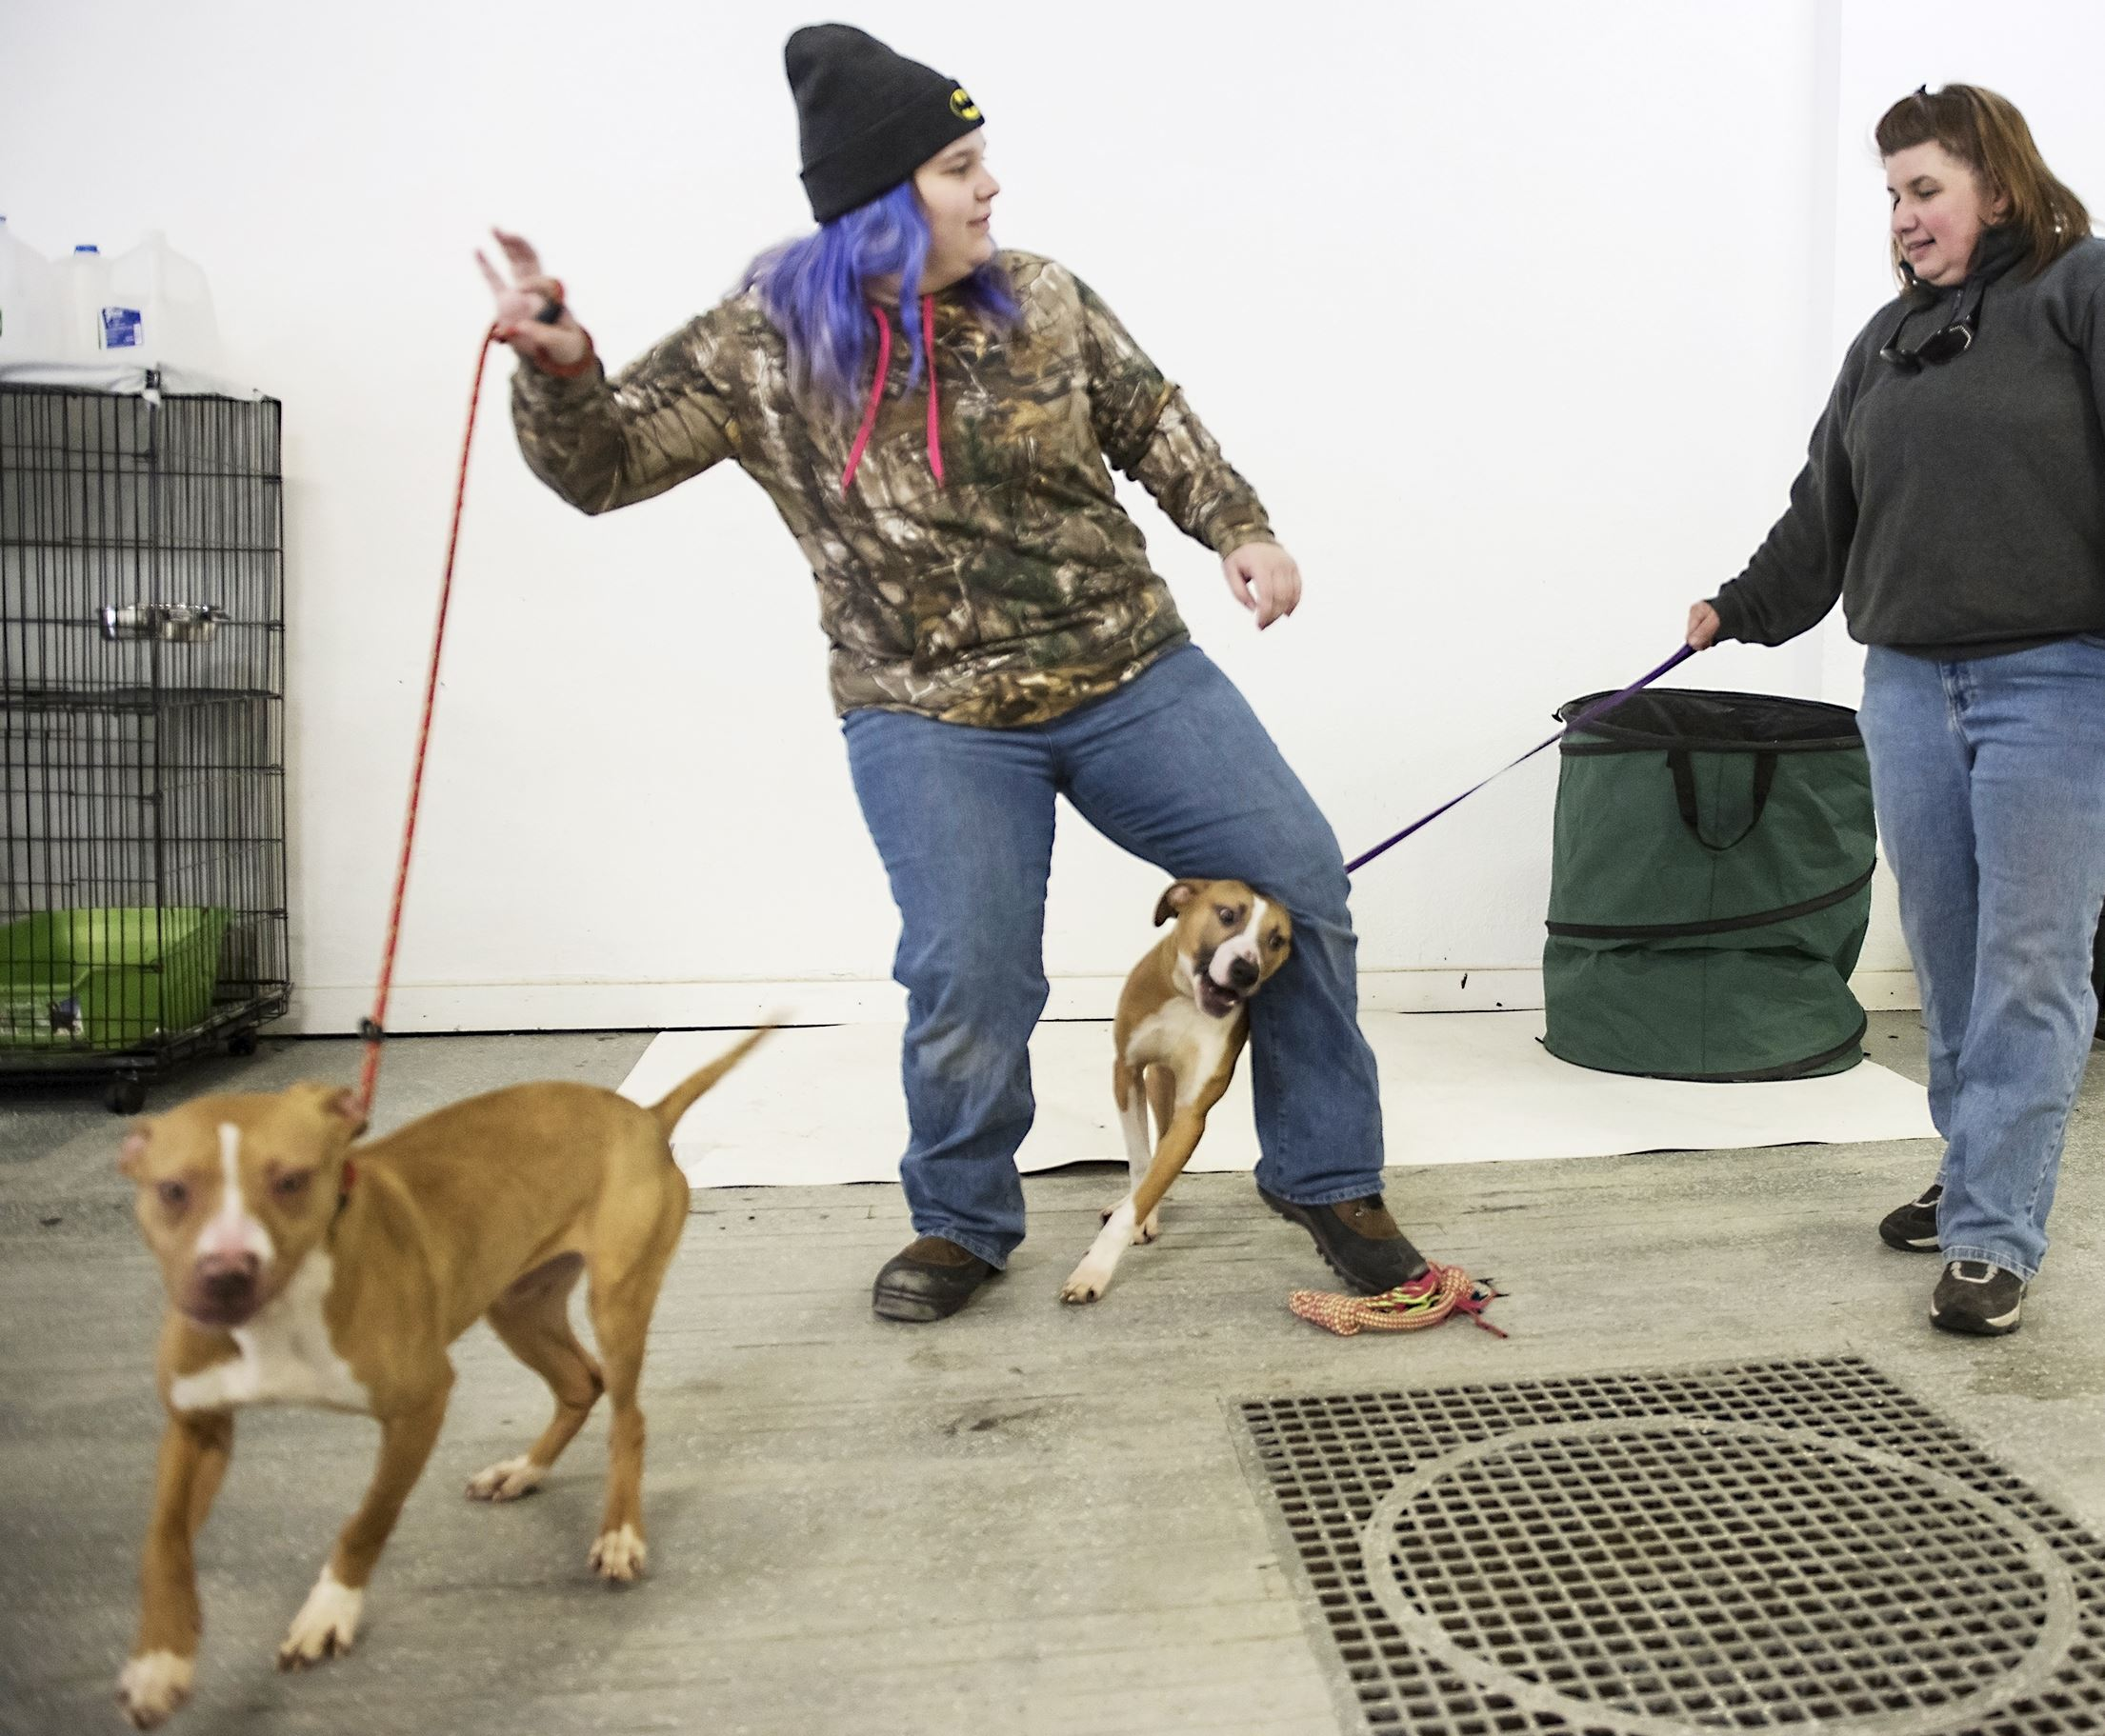 20170315hnpettales0318-3-2 Volunteer Gabriella Rankin, 15, left, is pulled one direction by Princess while Garfield runs between her legs and dog trainer Annette Sexton pulls him in at the Gaydos-Behanna Kennel in Clairton.